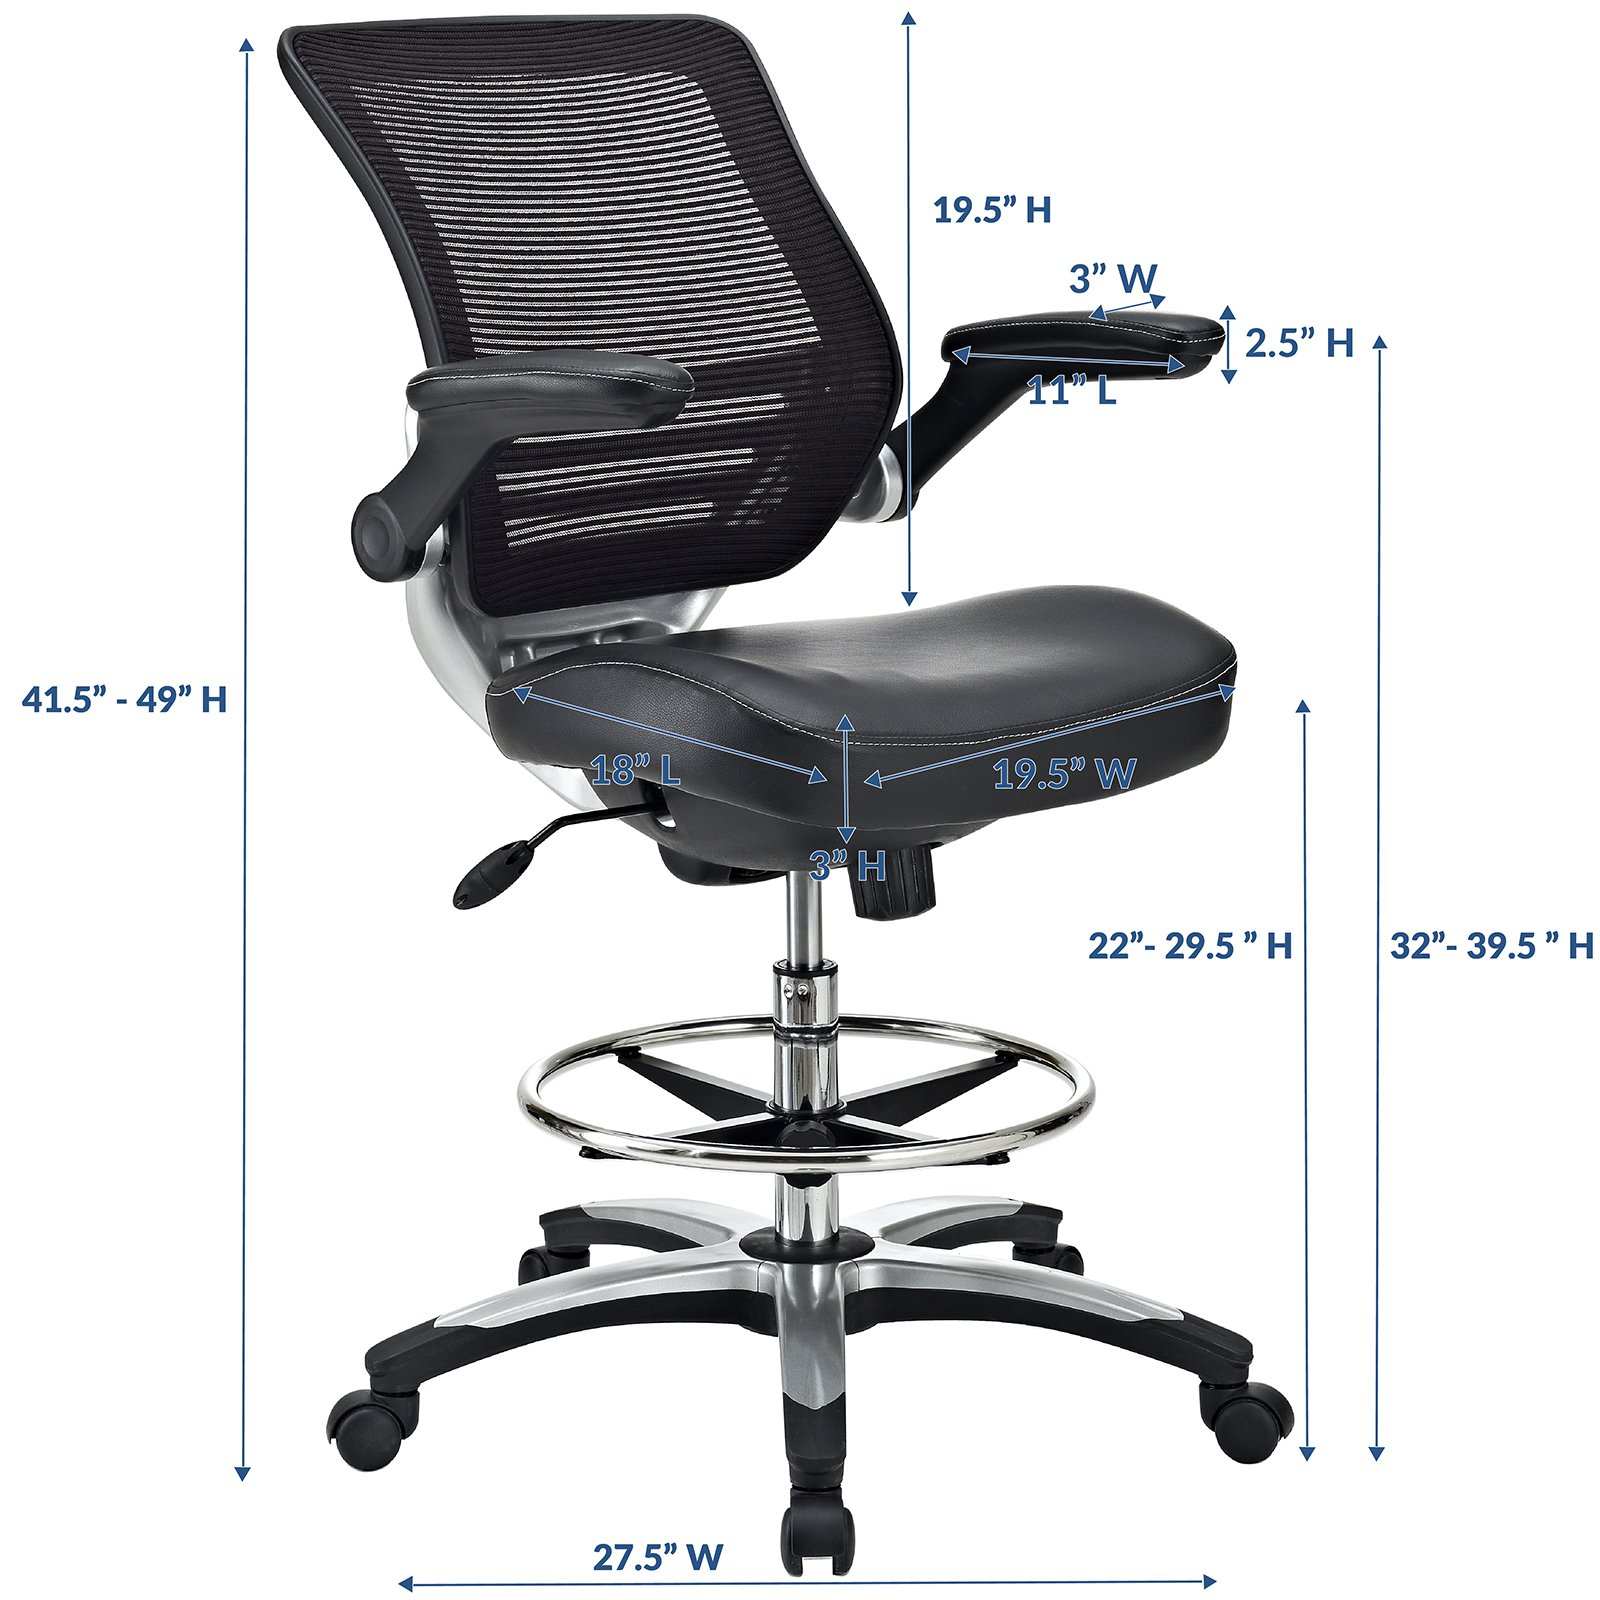 Tall Office Chairs For Standing Desks on art & graphic design desks, tall standing work desk, stand up work desks, ergonomic chairs for standing desks, tall black wood desk, tall lab chairs desk, tall office chair with footrest,